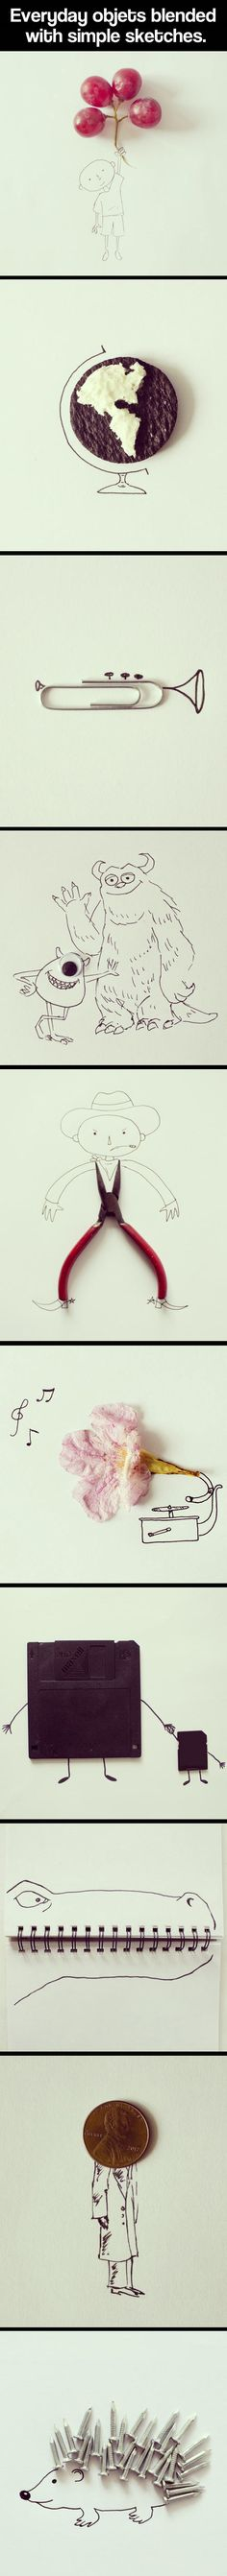 Geeky artist combines everyday items with simple sketches to create these imaginative scenes.